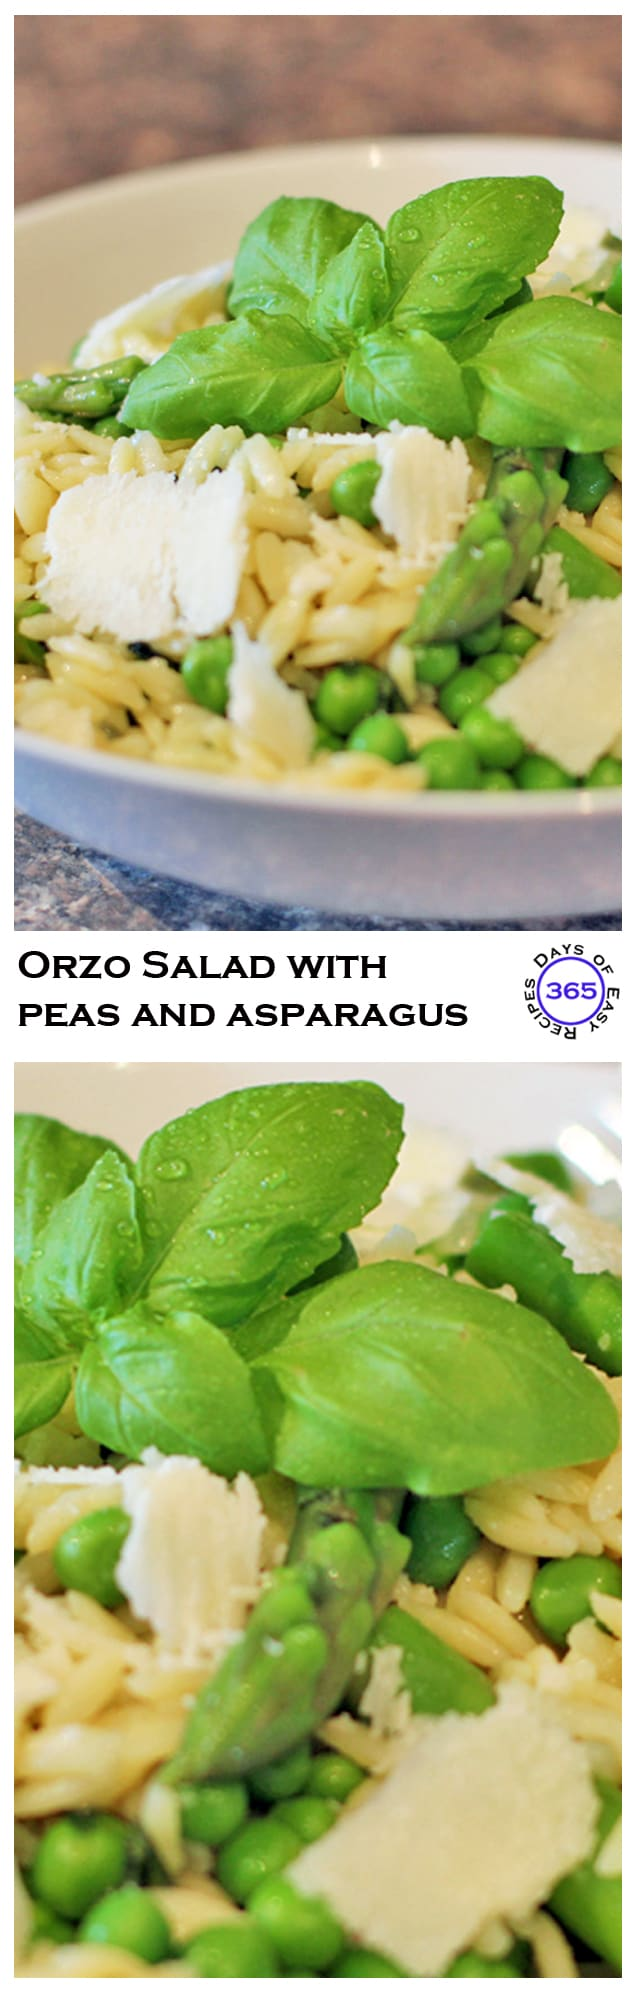 Orzo Salad with Peas and Asparagus | 365 Days of Easy Recipes